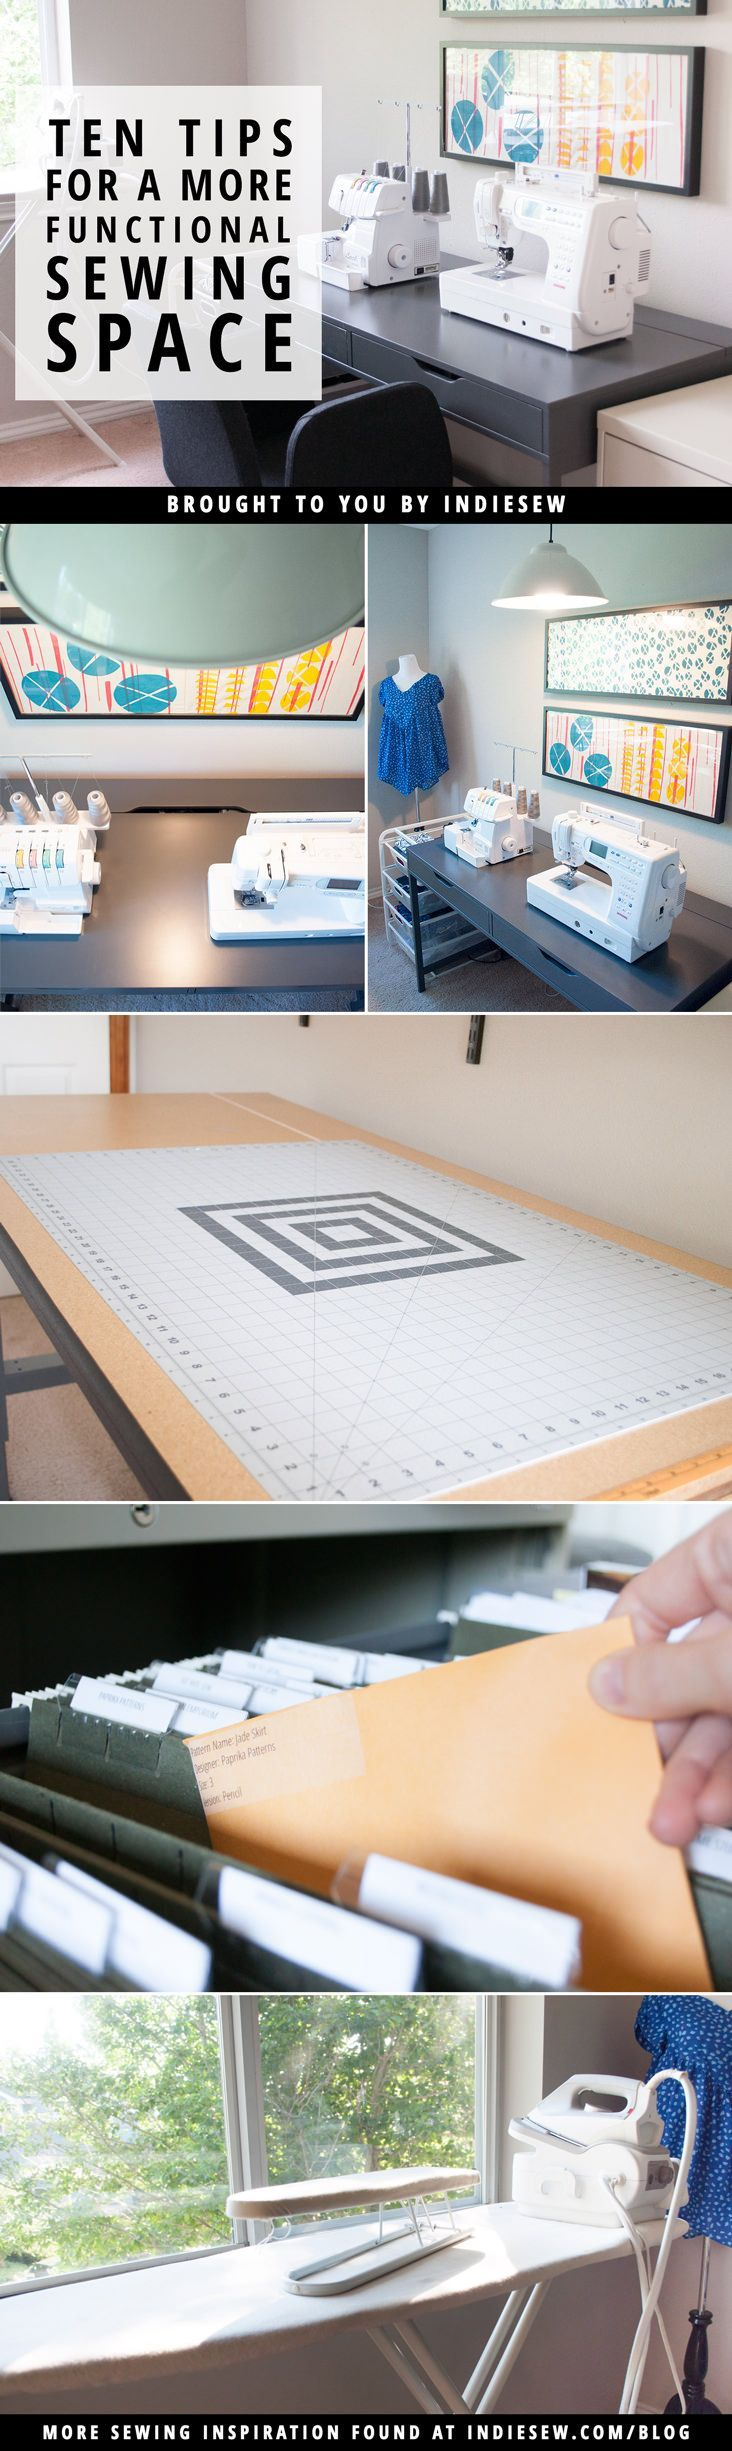 Spruce up your creative space with these ten tips for a more functional sewing room! | Indiesew.com